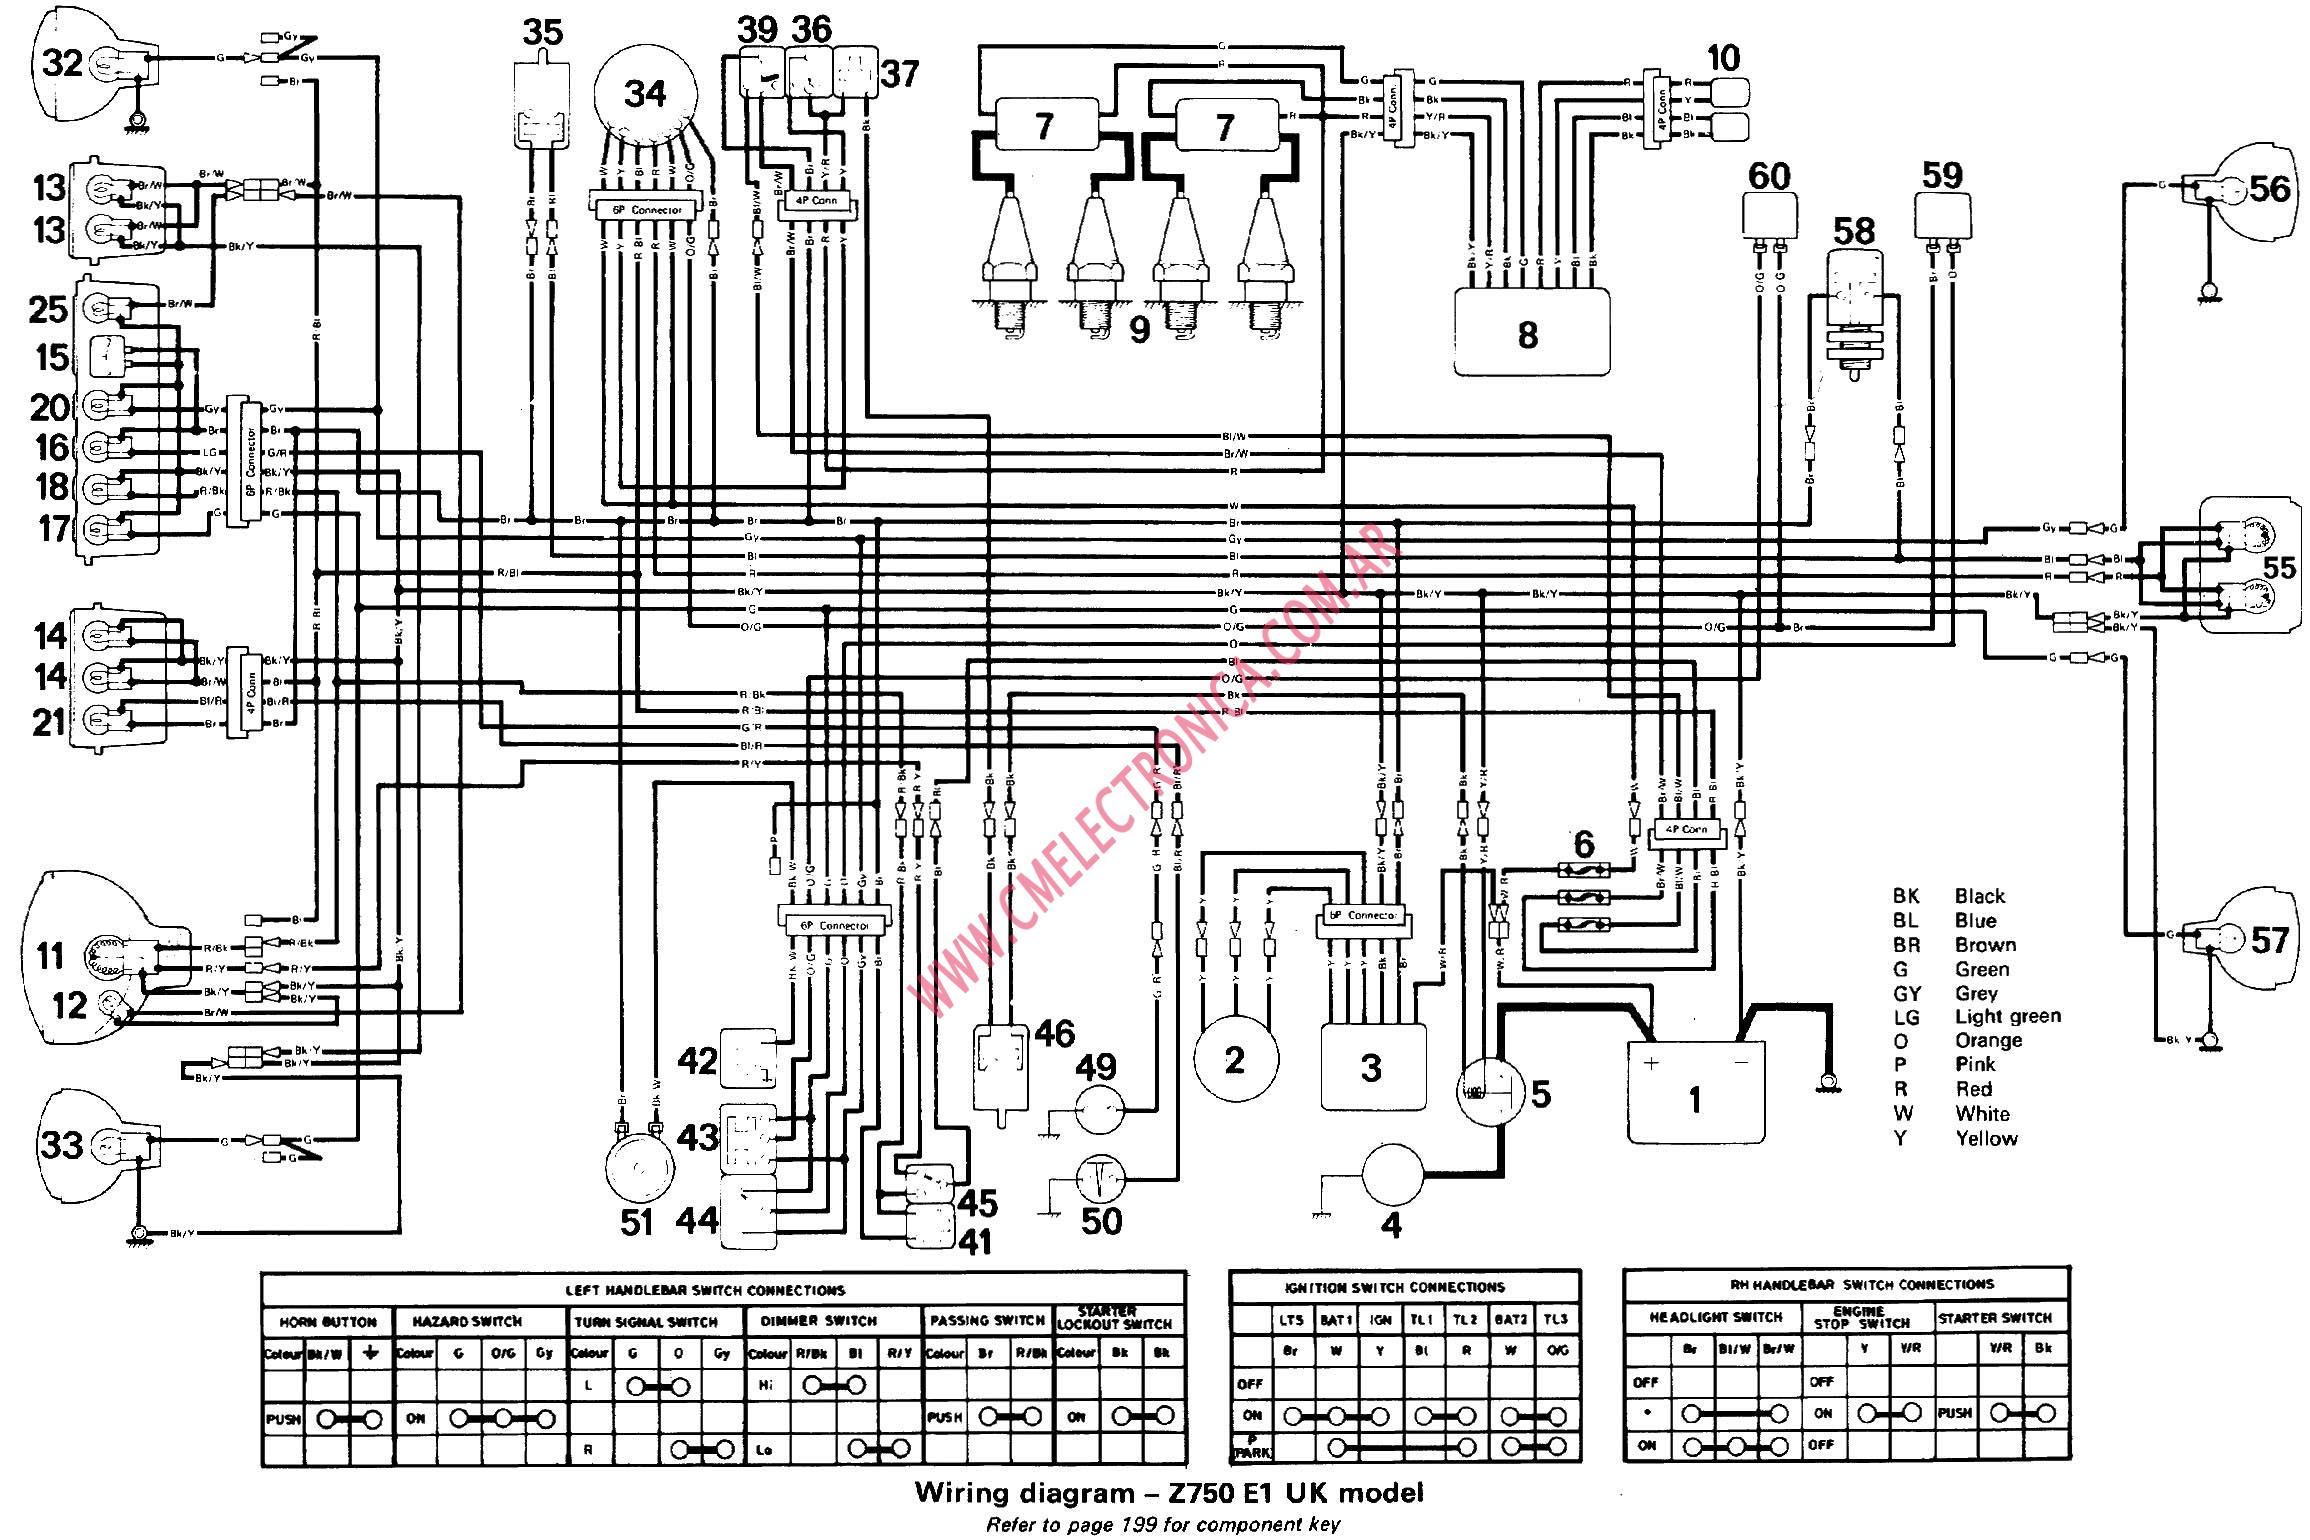 Kawasaki Bayou 220 Wiring Diagram For Your Needs